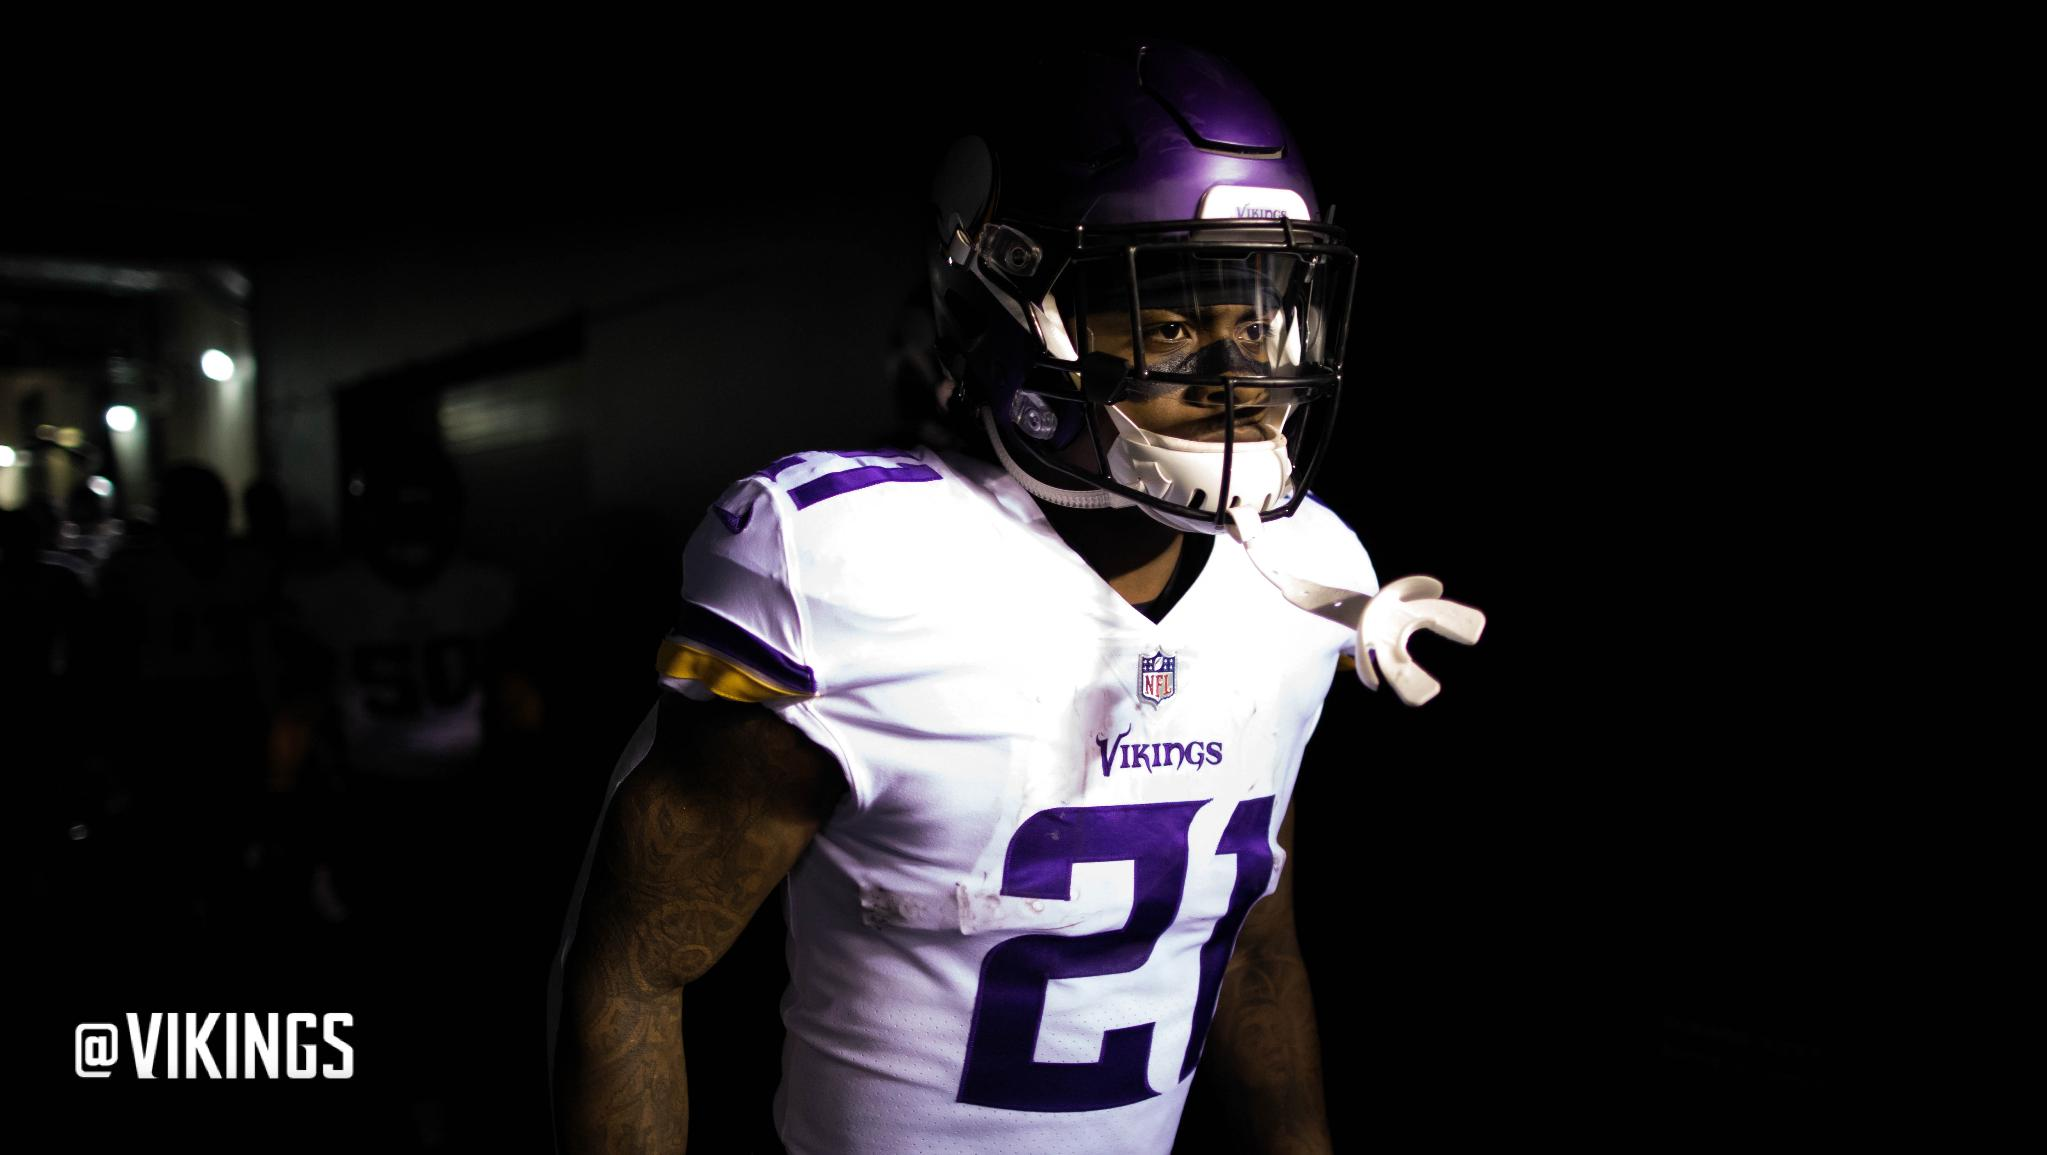 Pending #Vikings free agents are a topic of conversation on this week's Wobcast.  ��: https://t.co/agP4TvSXKB https://t.co/JIbbzMrhVq